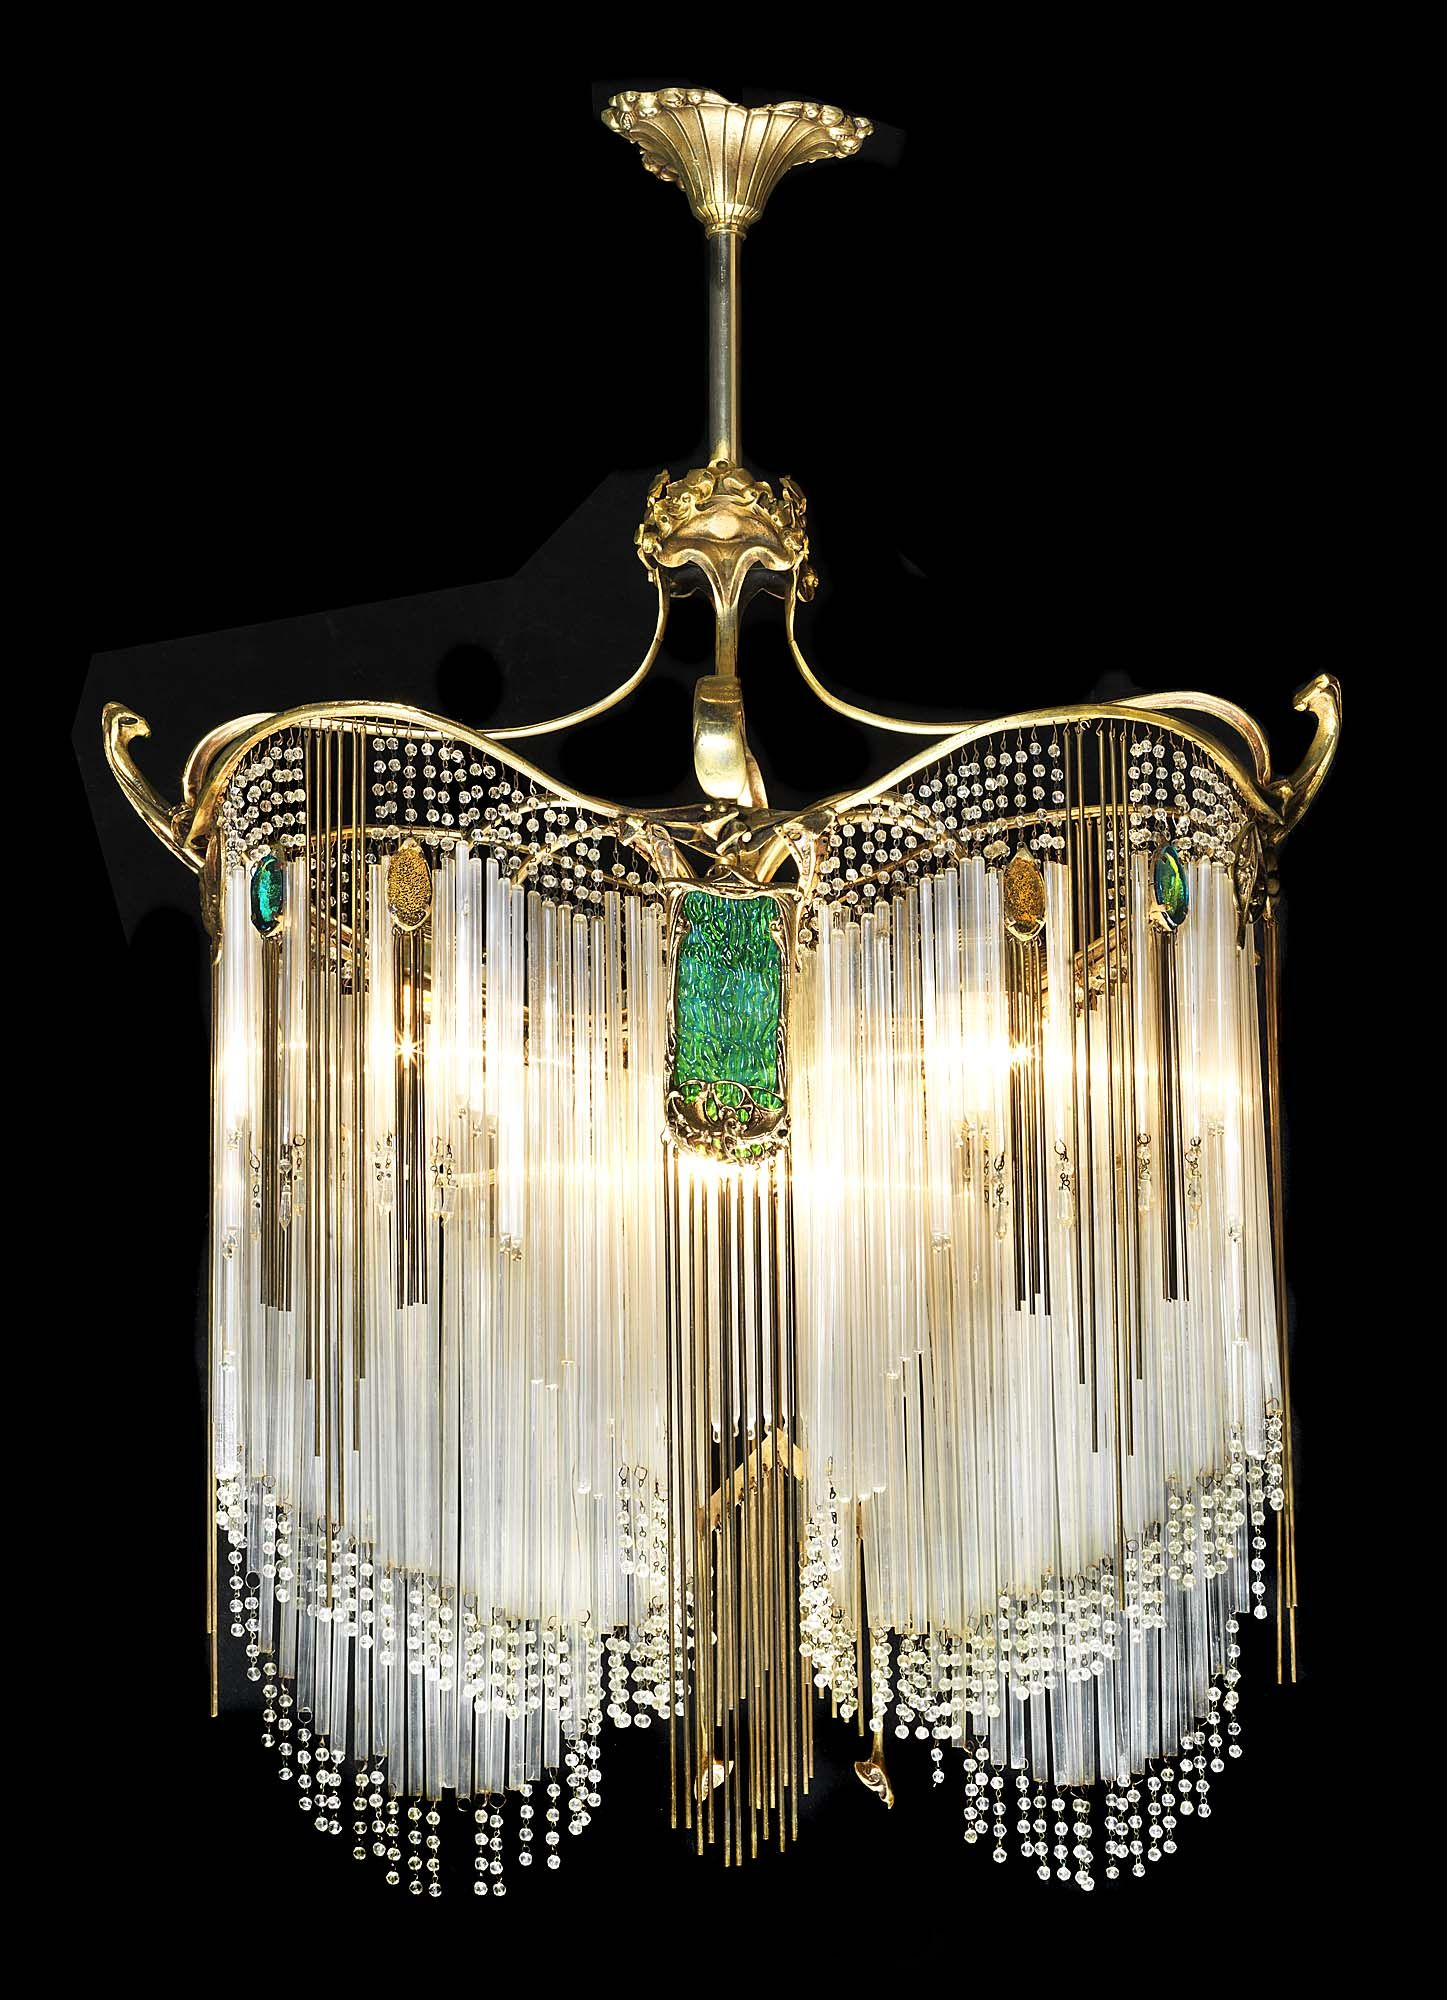 Art nouveau chandelier hector guimard own something this pretty art nouveau chandelier hector guimard own something this pretty someday aloadofball Image collections